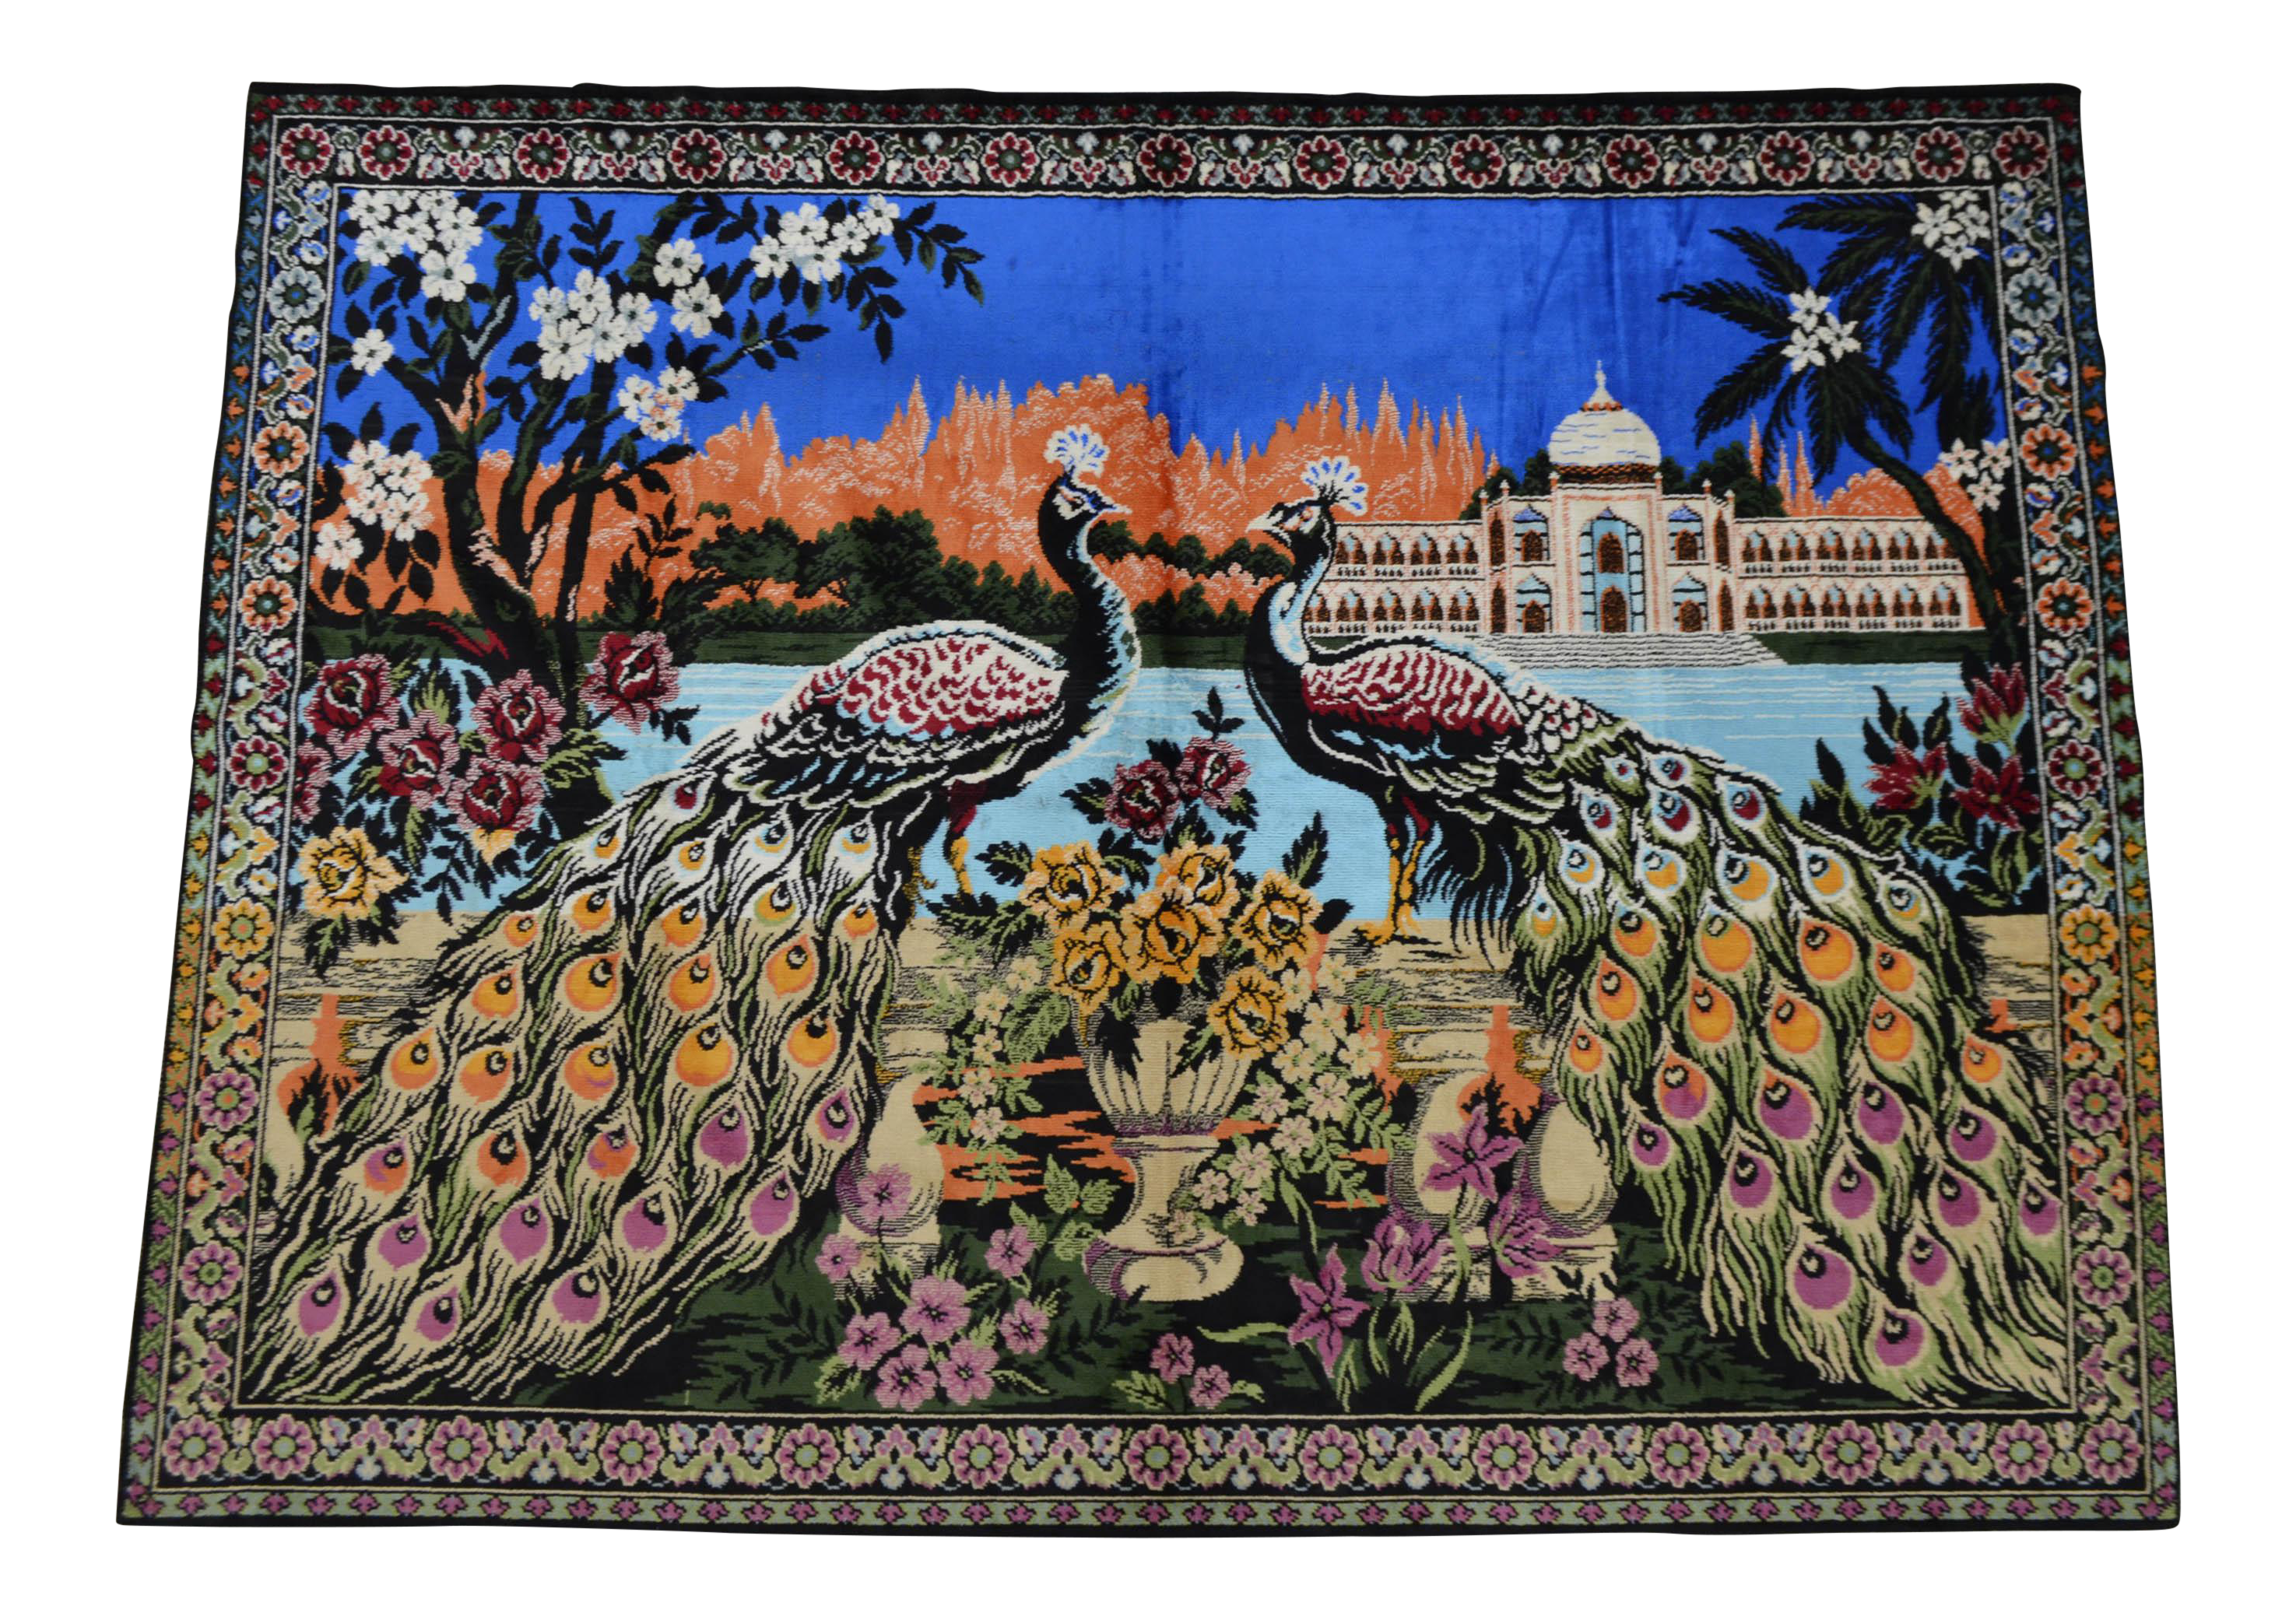 Vintage Peacock Pattern Tapestry Chairish